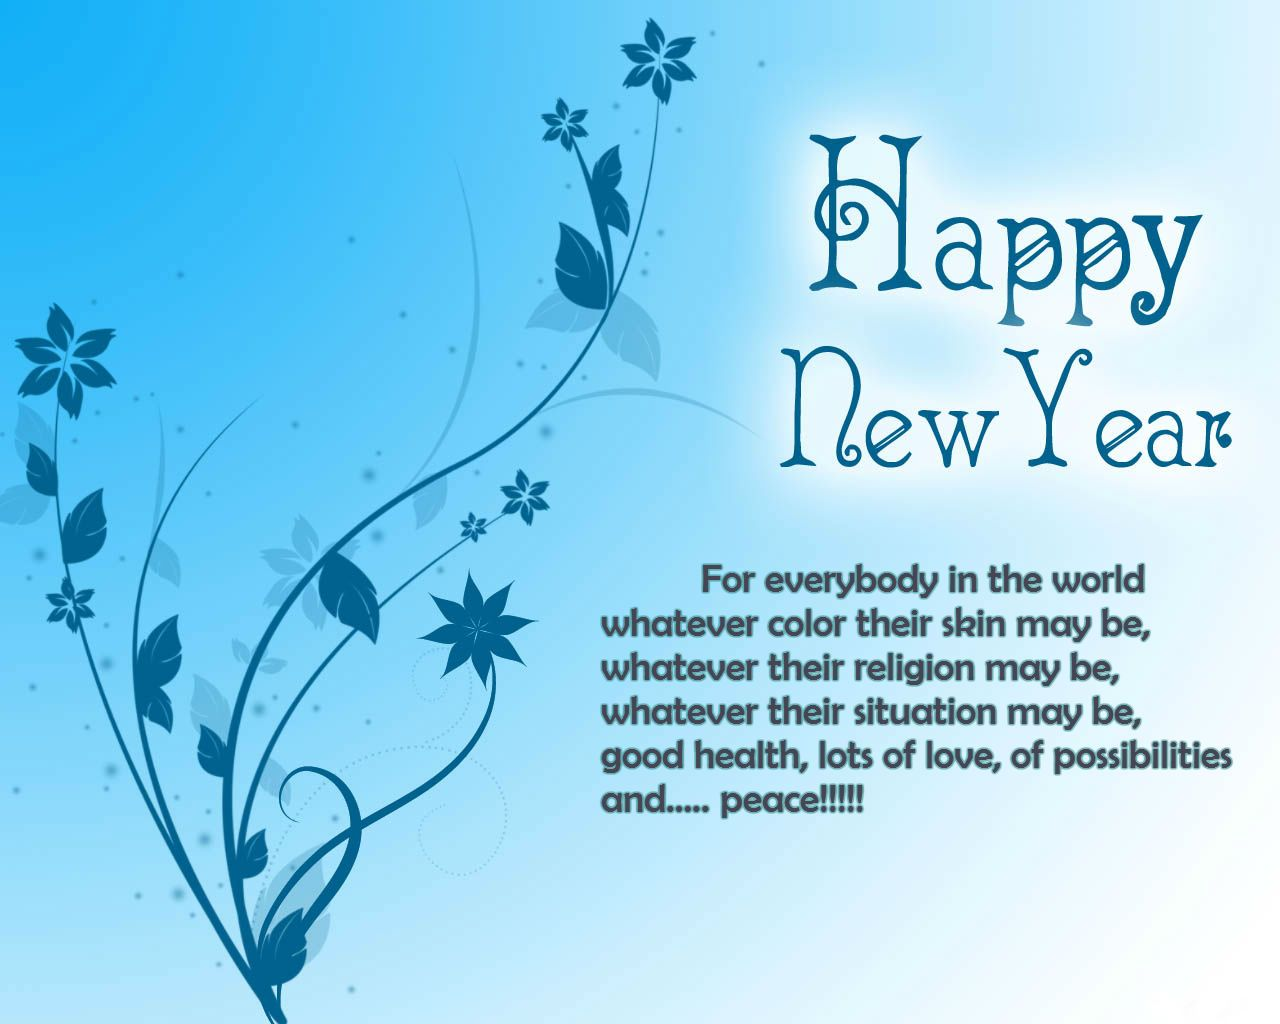 new year 2017 year 2016 happy new year 2014 happy new year poem